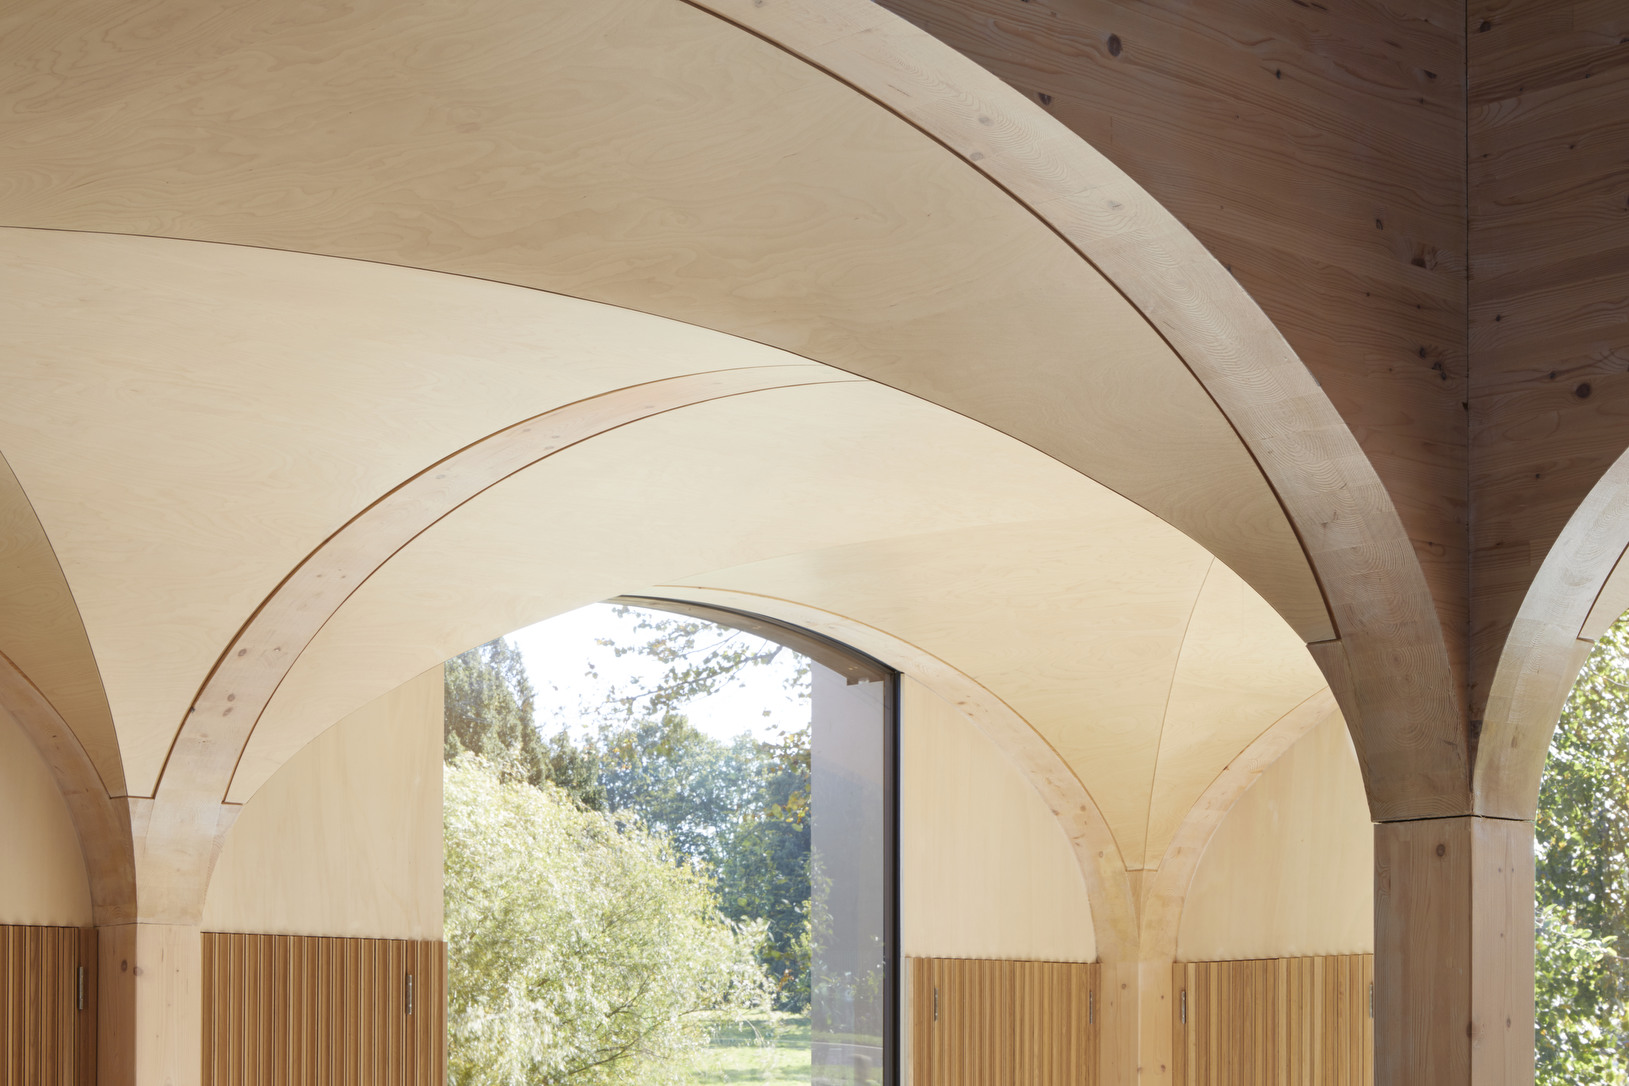 Arched ceilings panelled with bright wood in the Wildernesse Restaurant